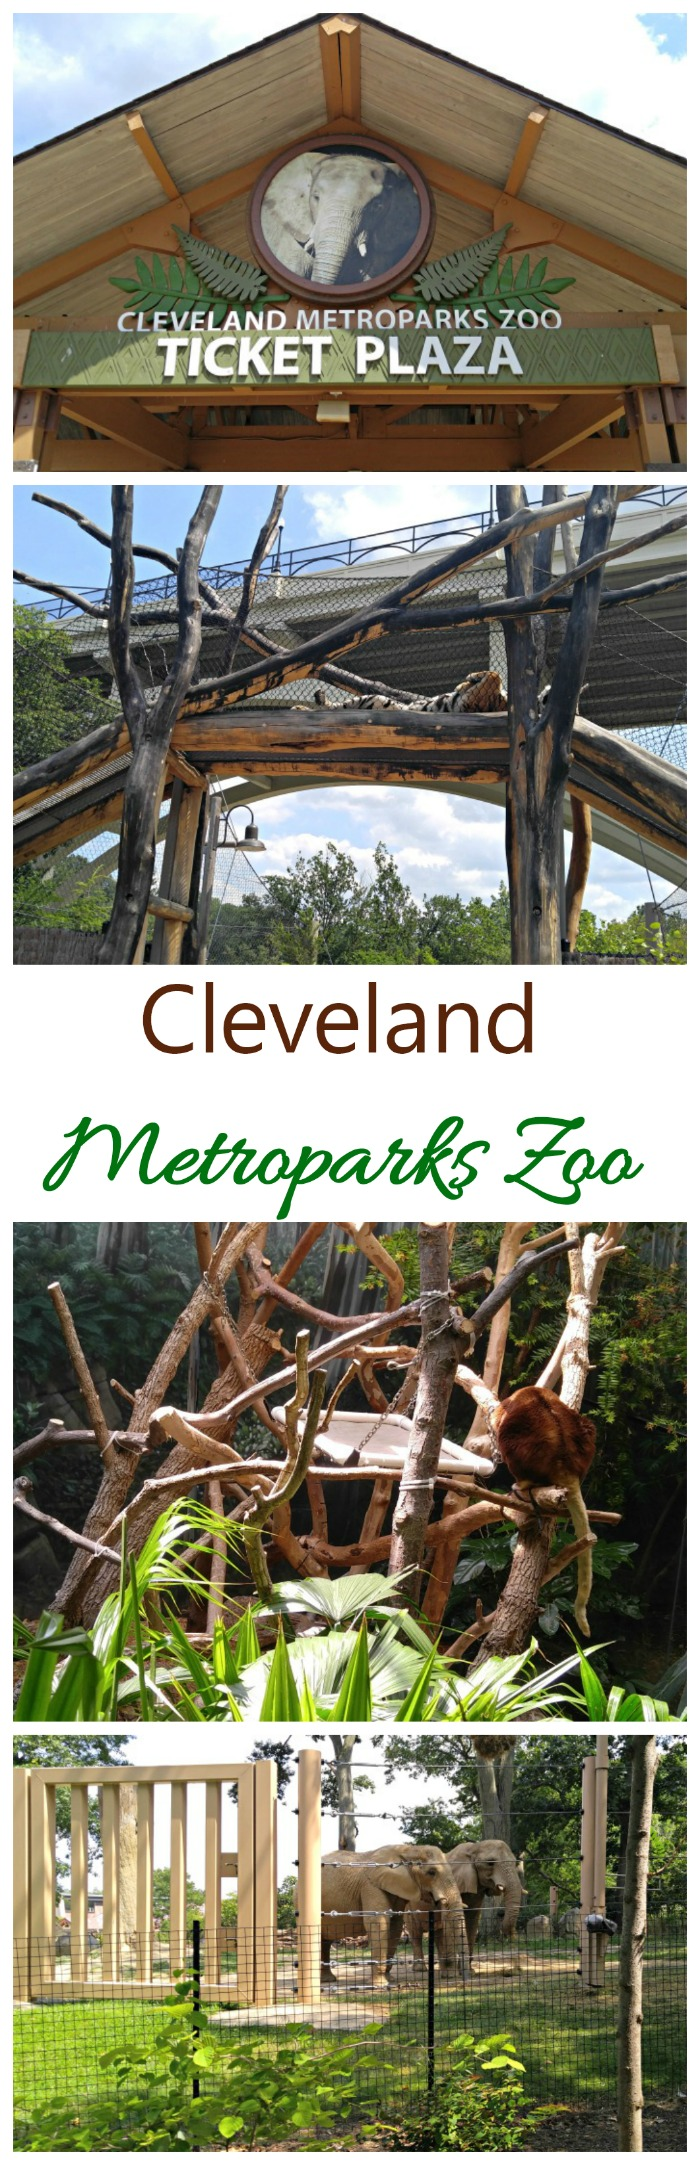 The Cleveland Metroparks Zoo is home to 3000 animals and over 10,000 plants